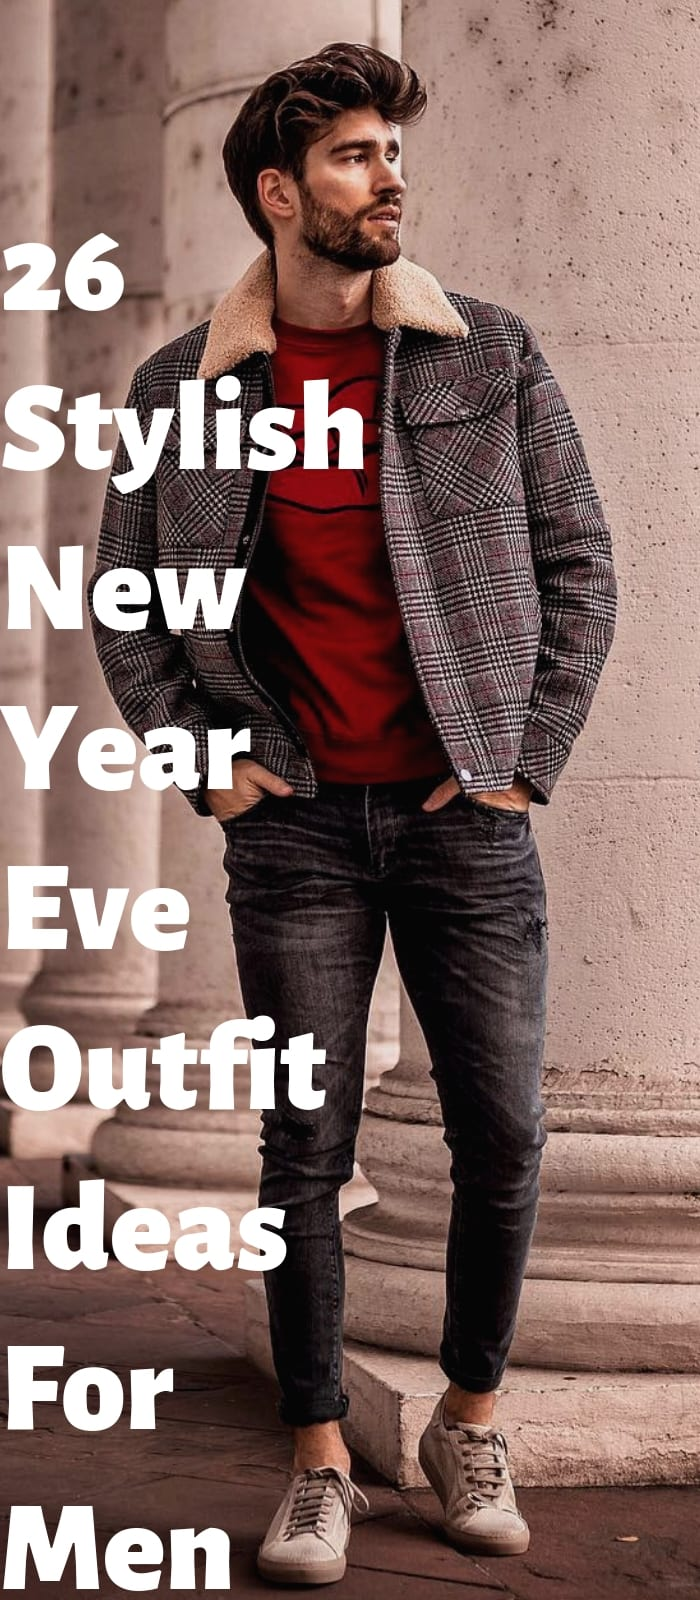 26 Stylish New Year Eve Outfit Ideas For Men!